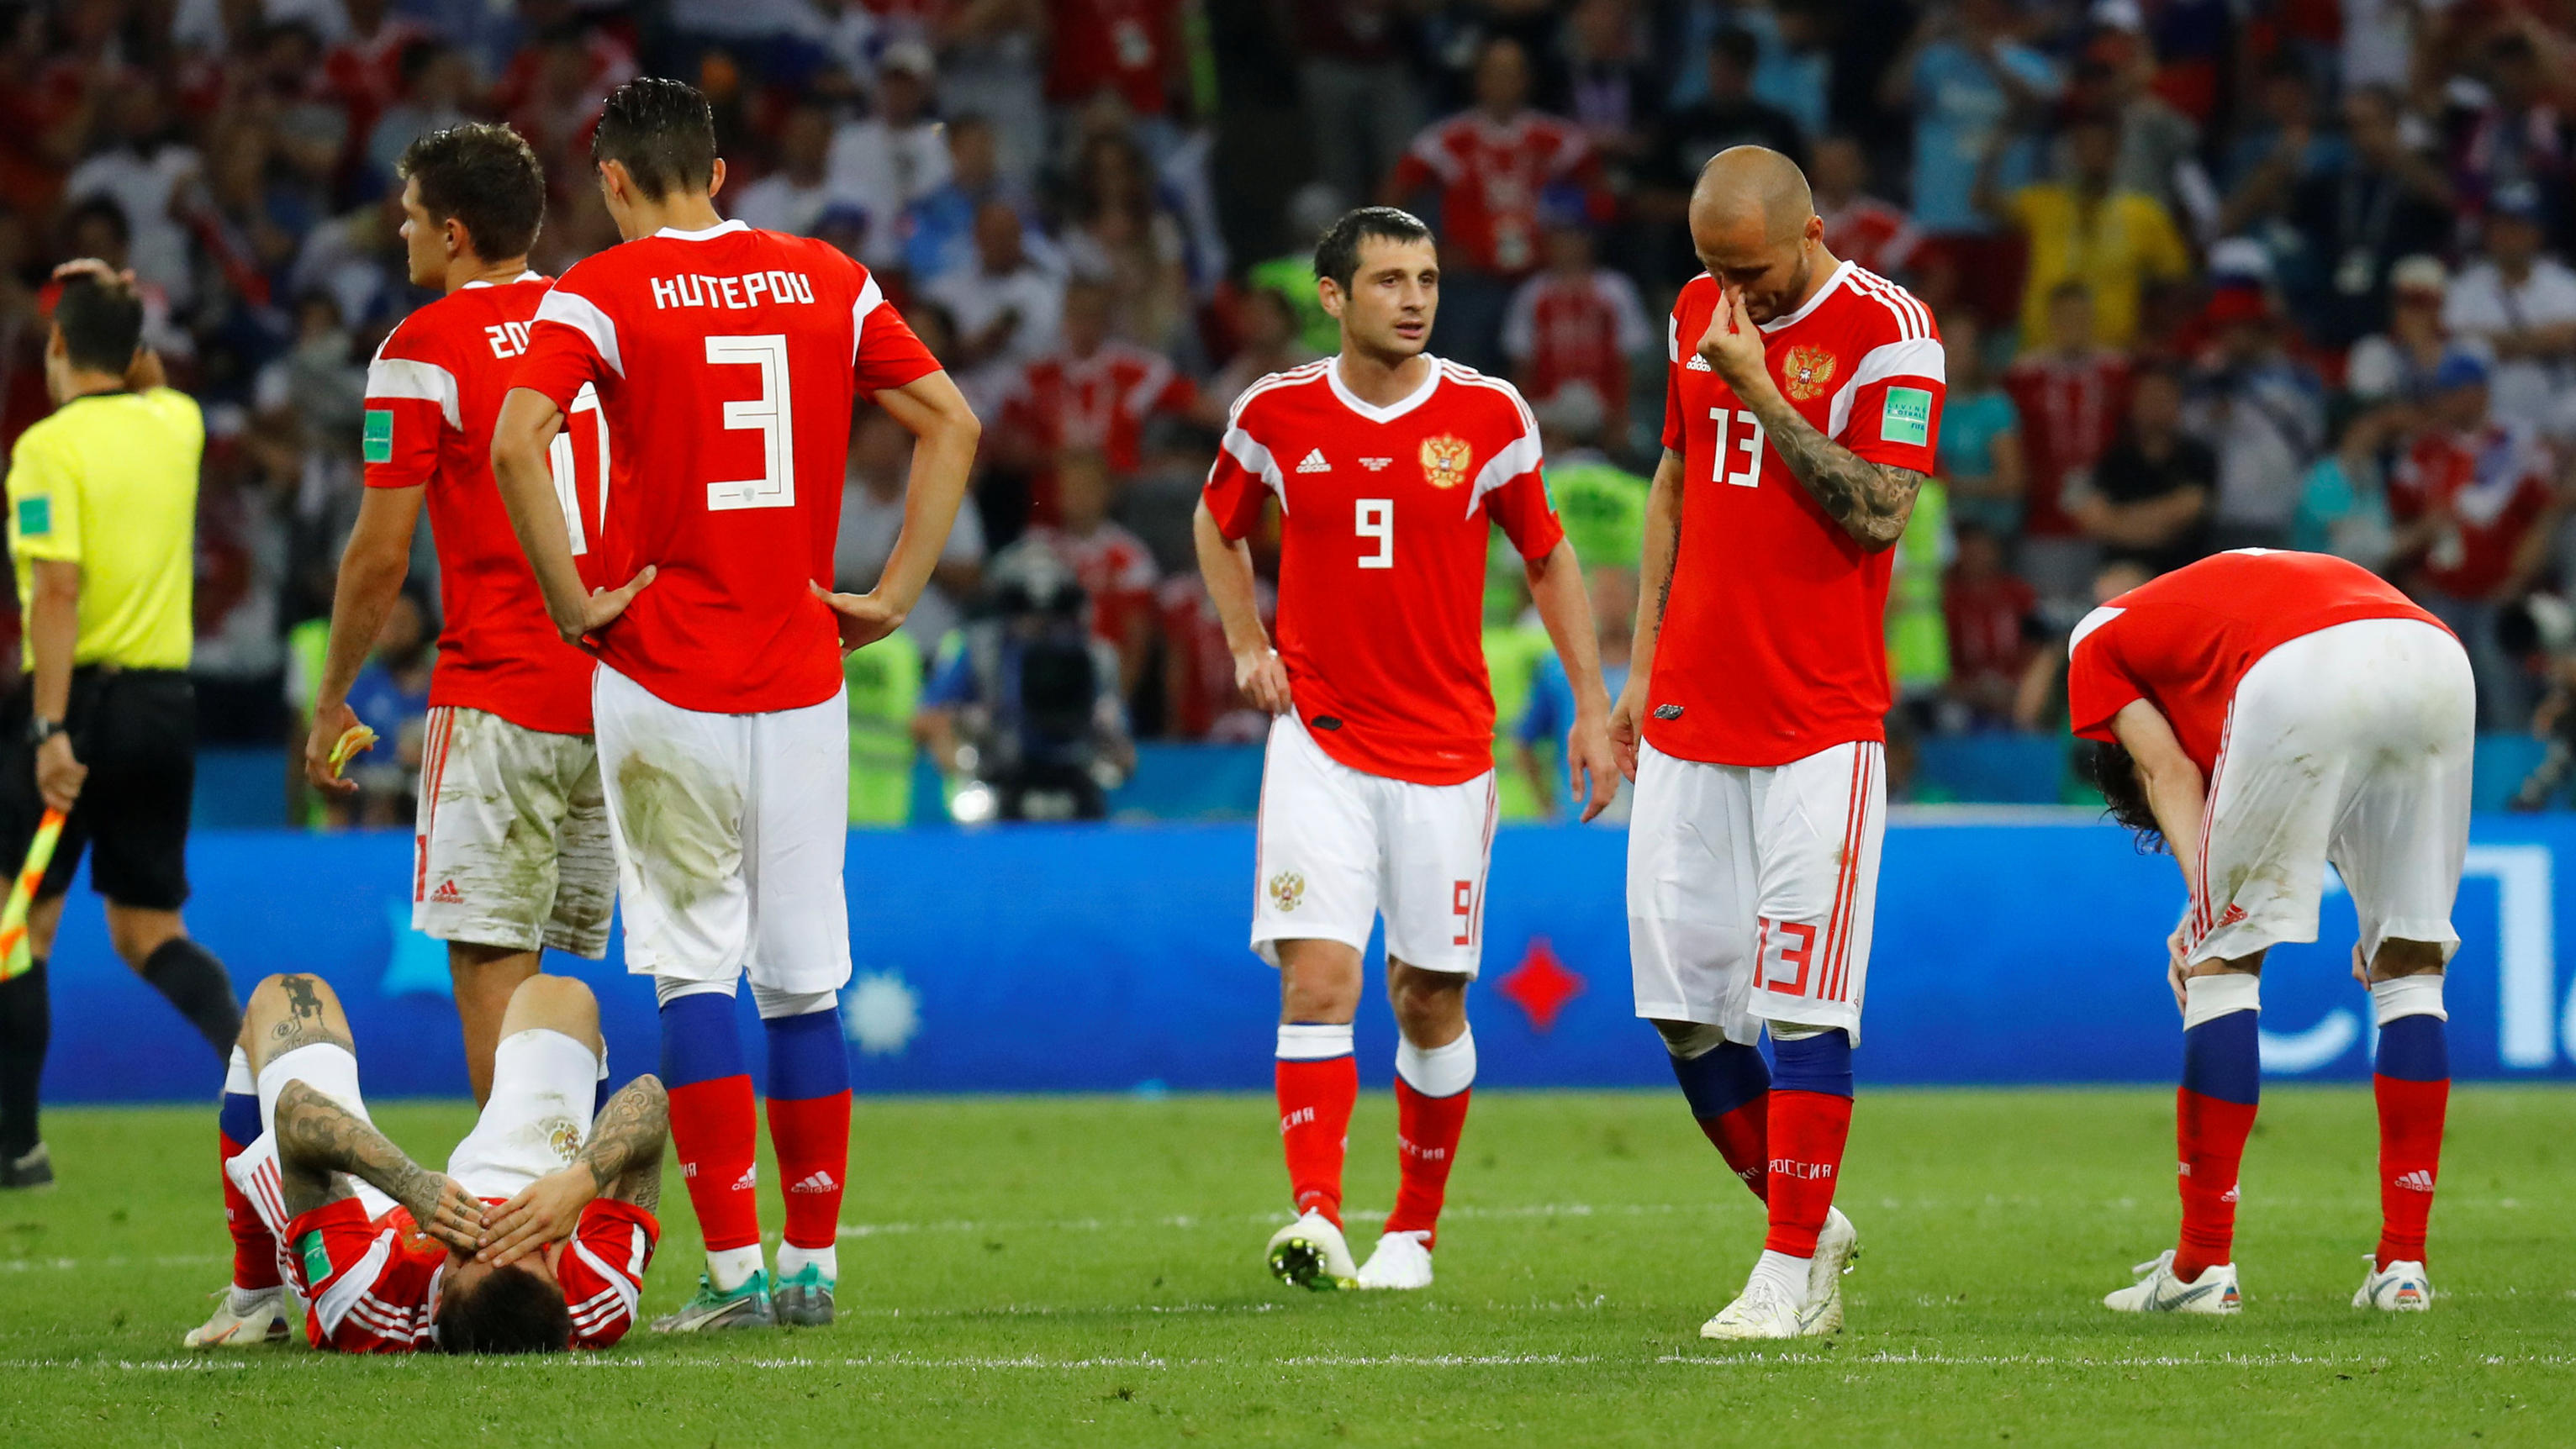 Soccer Football - World Cup - Quarter Final - Russia vs Croatia - Fisht Stadium, Sochi, Russia - July 7, 2018  Russia's Fyodor Kudryashov and team mates look dejected after the match                                              REUTERS/Kai Pfaffenbac